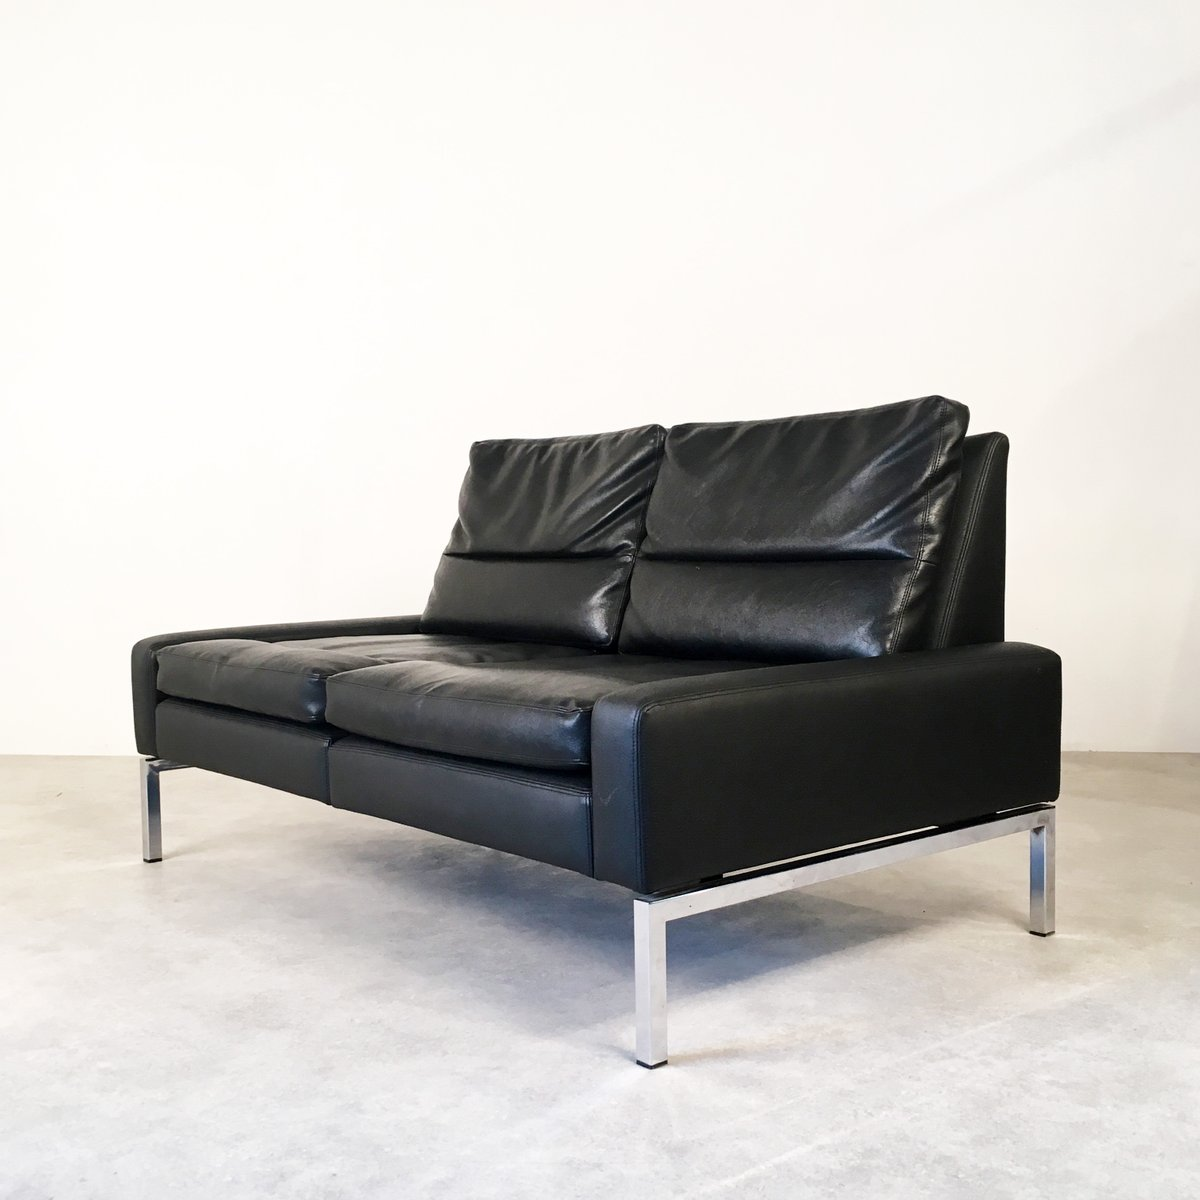 Sofa by hans peter piel for wilkhahn for sale at pamono - Tapizar sofa piel ...